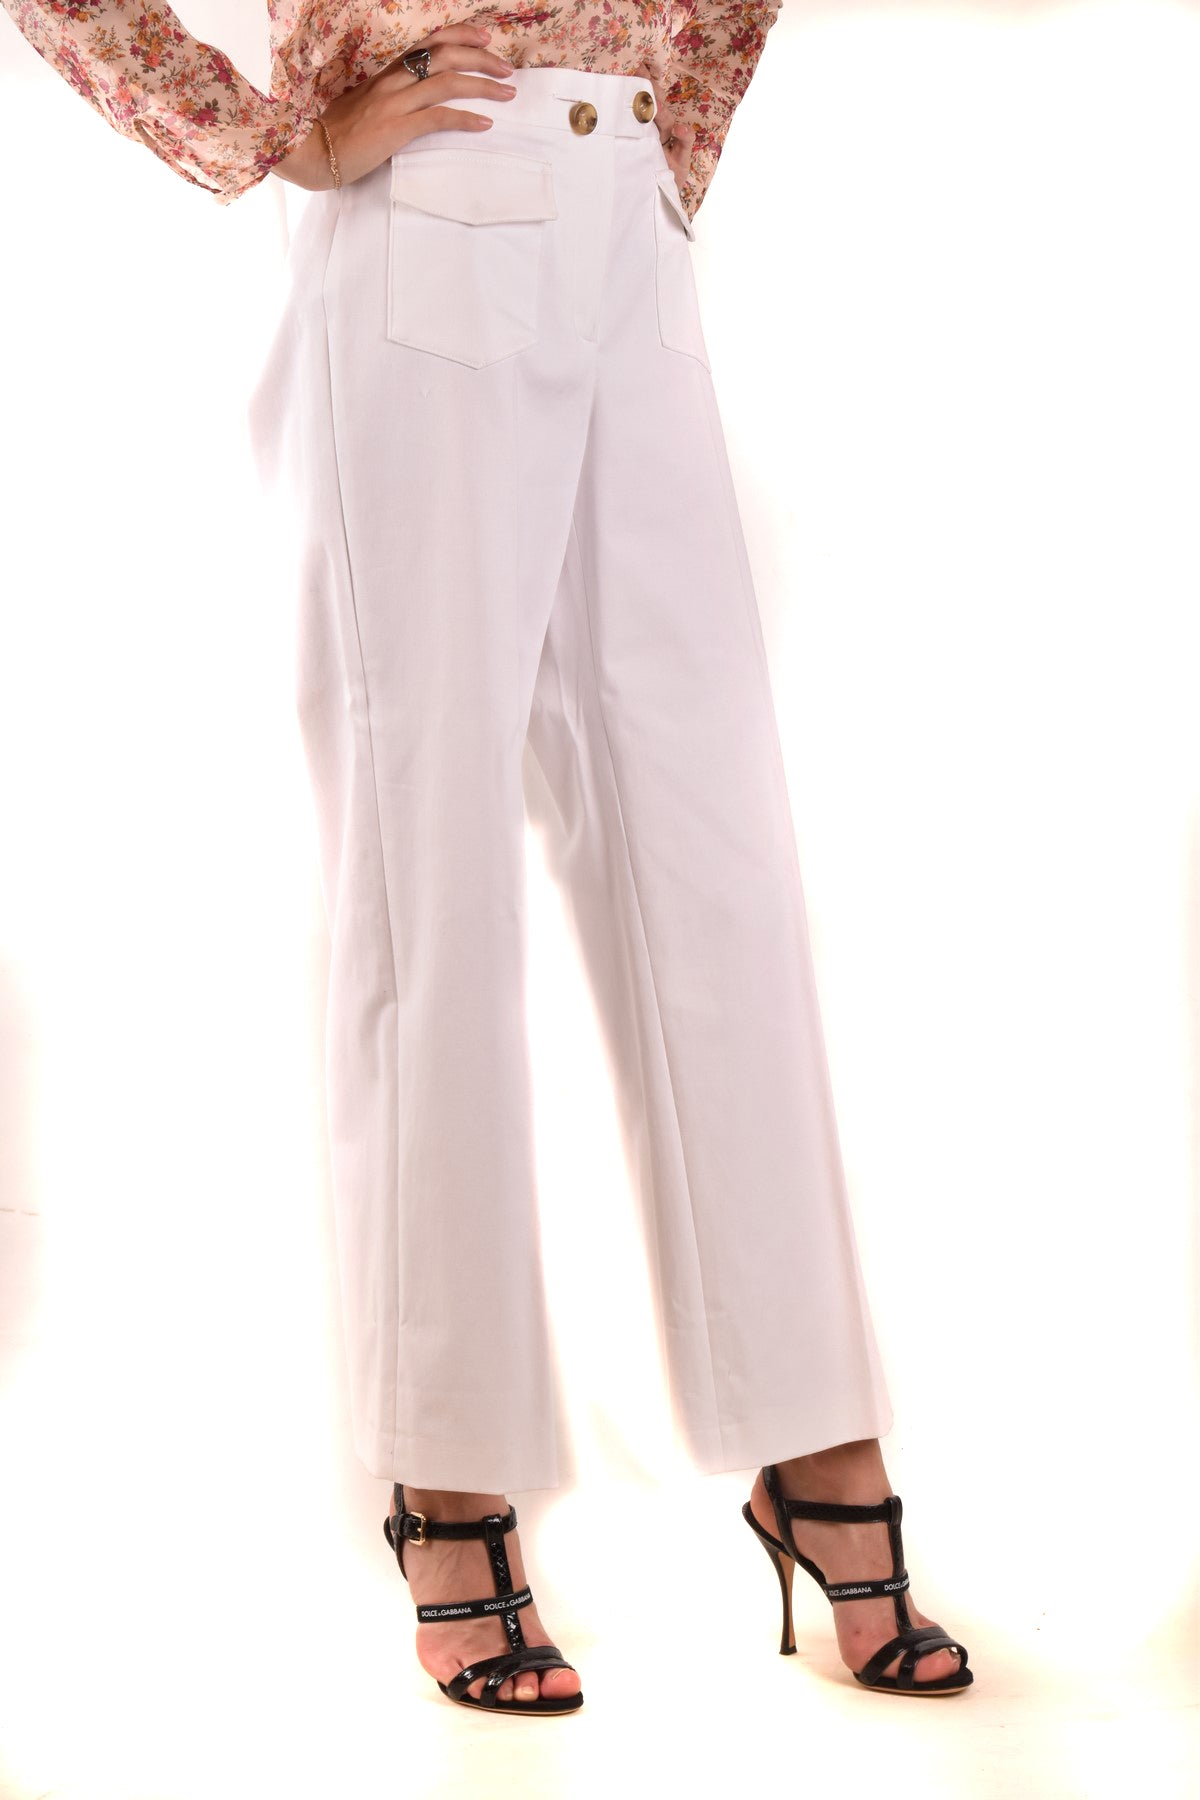 Trousers R.E.D. Valentino-Women's Fashion - Women's Clothing - Bottoms - Pants & Capris-Product Details Terms: New With LabelClothing Type: TrousersMain Color: WhiteSeason: Spring / SummerMade In: RomaniaGender: WomanSize: EuComposition: Cotton 97%, Elastane 3%Year: 2020Manufacturer Part Number: Pr0Rb175-Keyomi-Sook